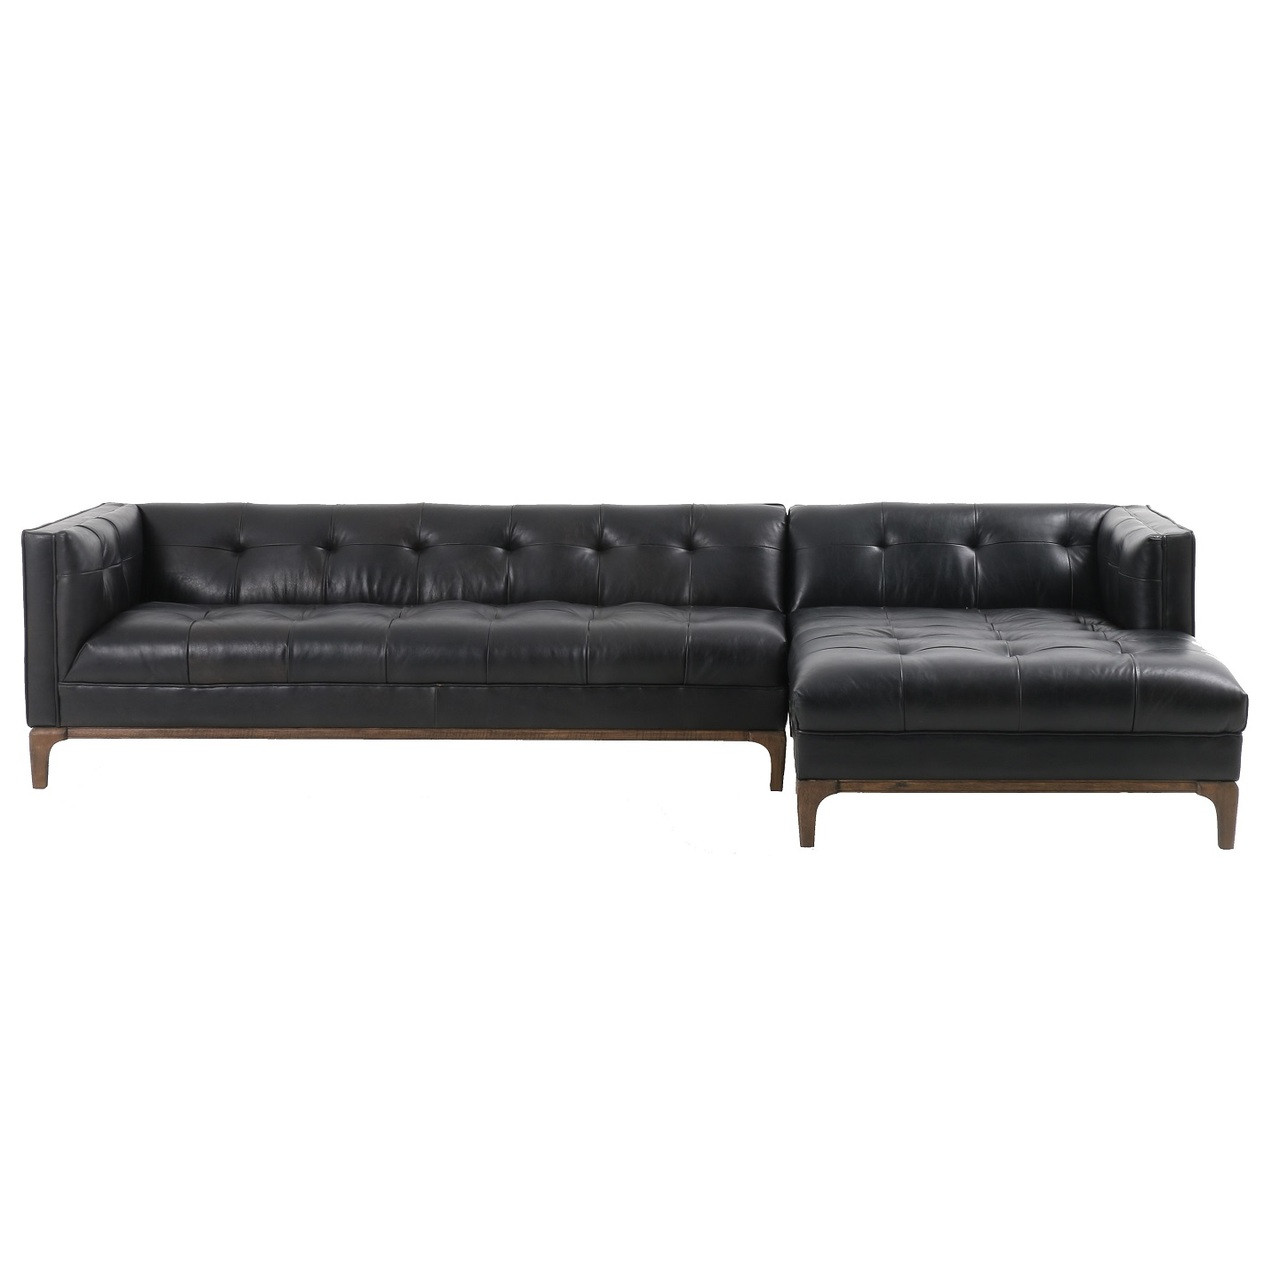 Dylan mid century modern tufted black leather sectional sofa